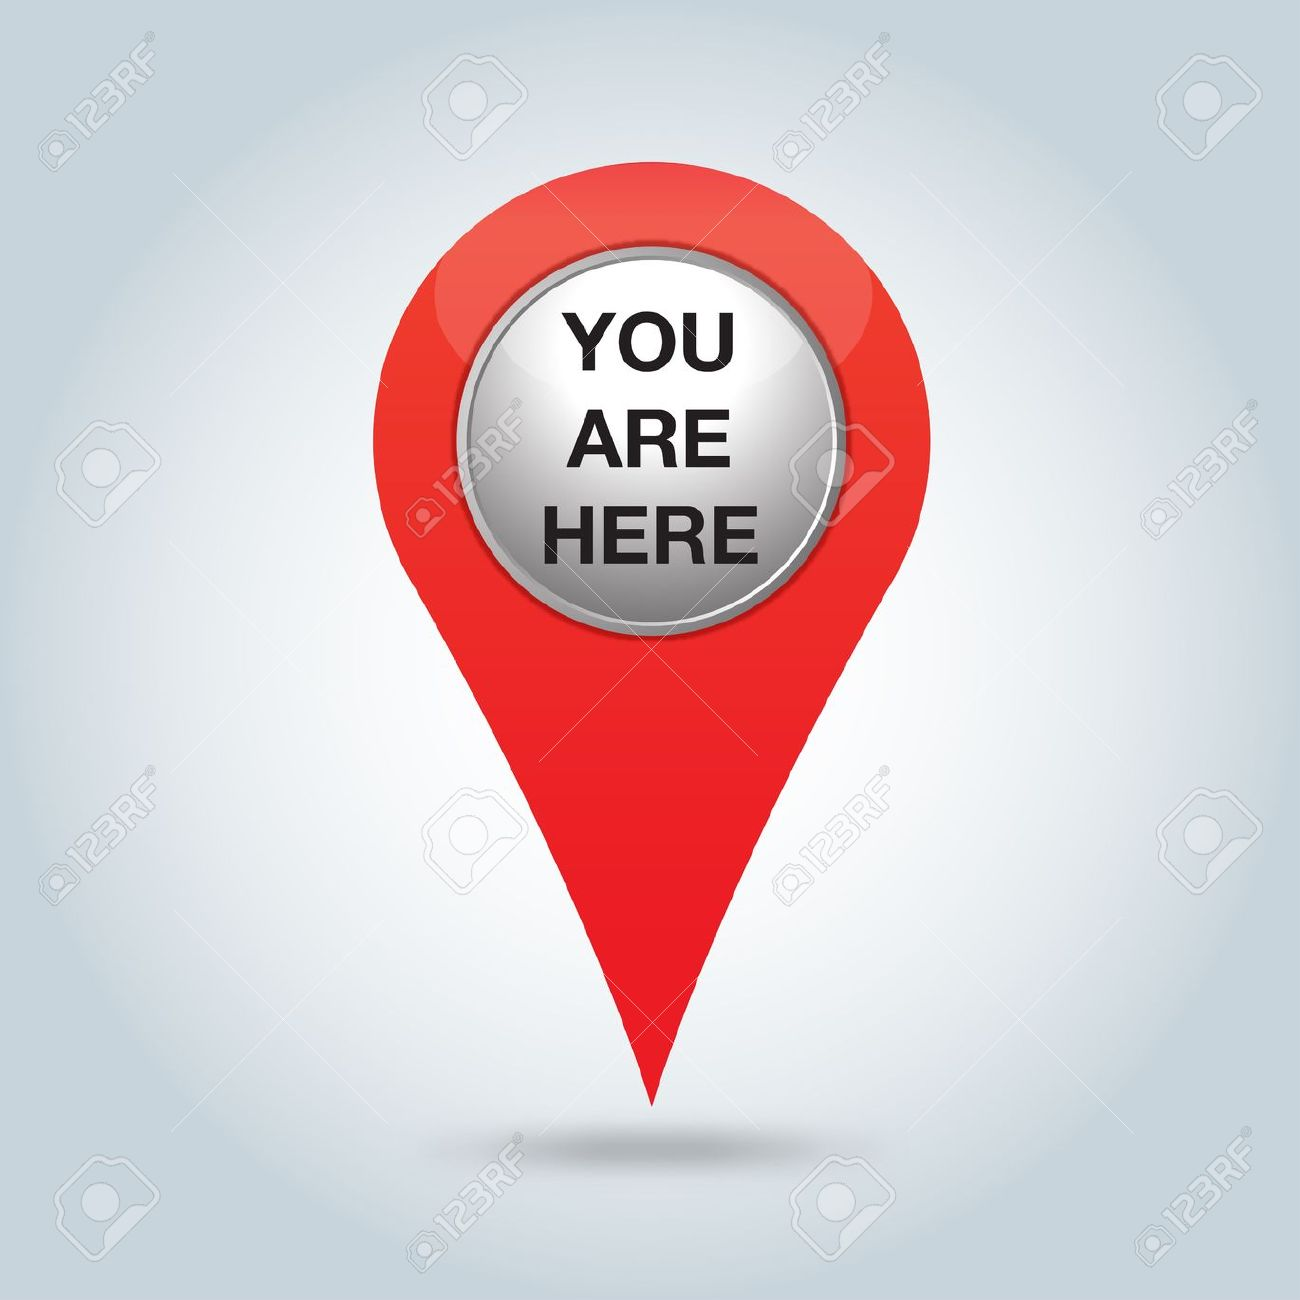 you are here map clipart clipground clip art cell phone free clip art cell phone claws